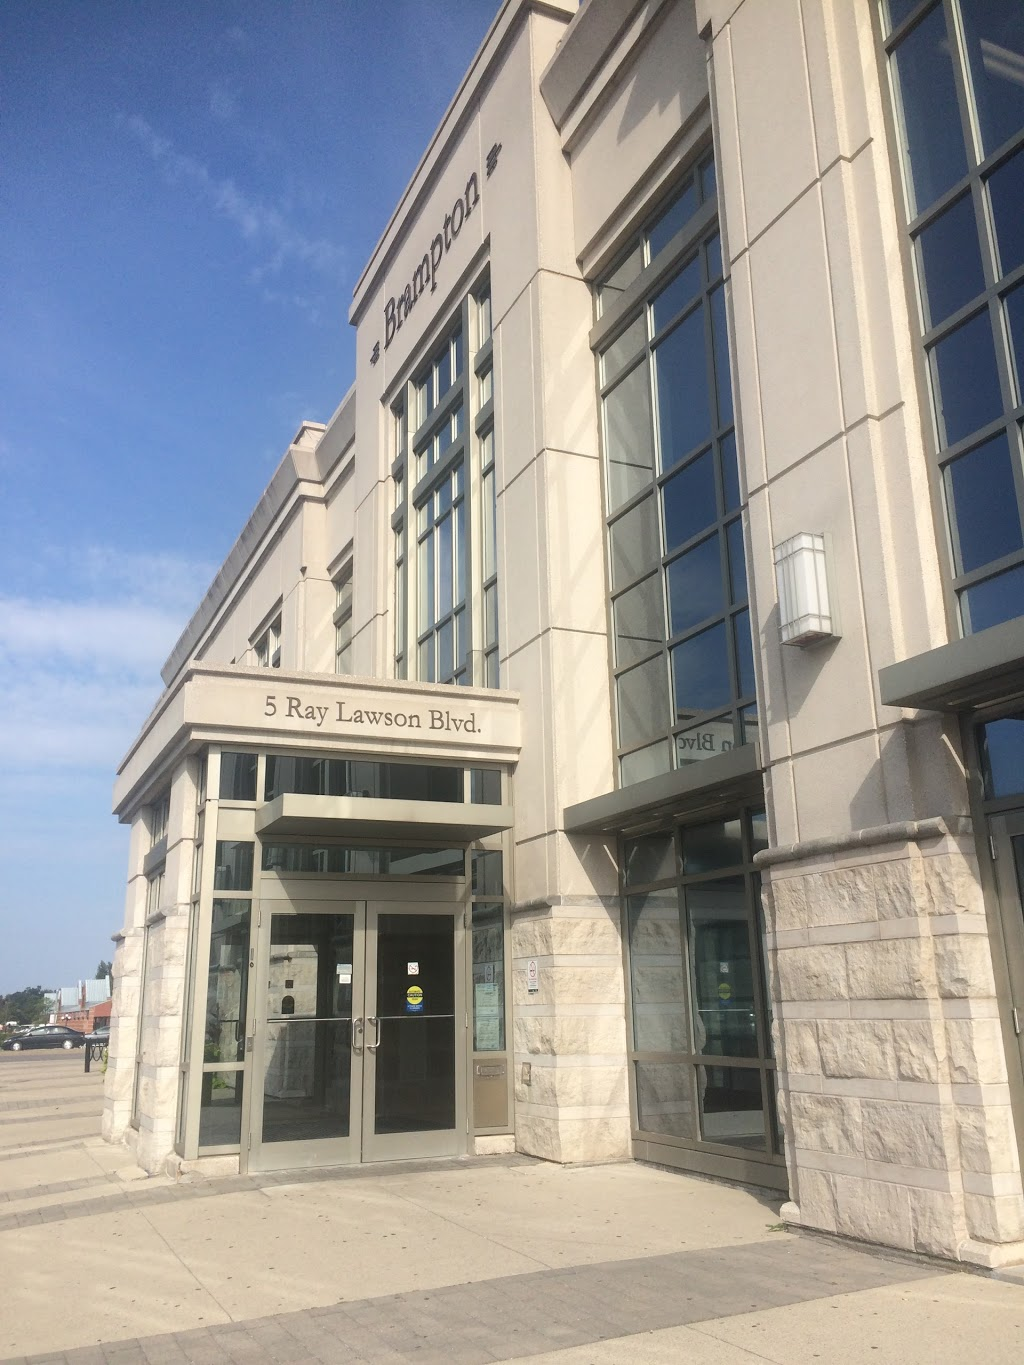 Brampton Provincial Offences Court   courthouse   5 Ray Lawson Blvd, Brampton, ON L6Y 5L7, Canada   9054504770 OR +1 905-450-4770